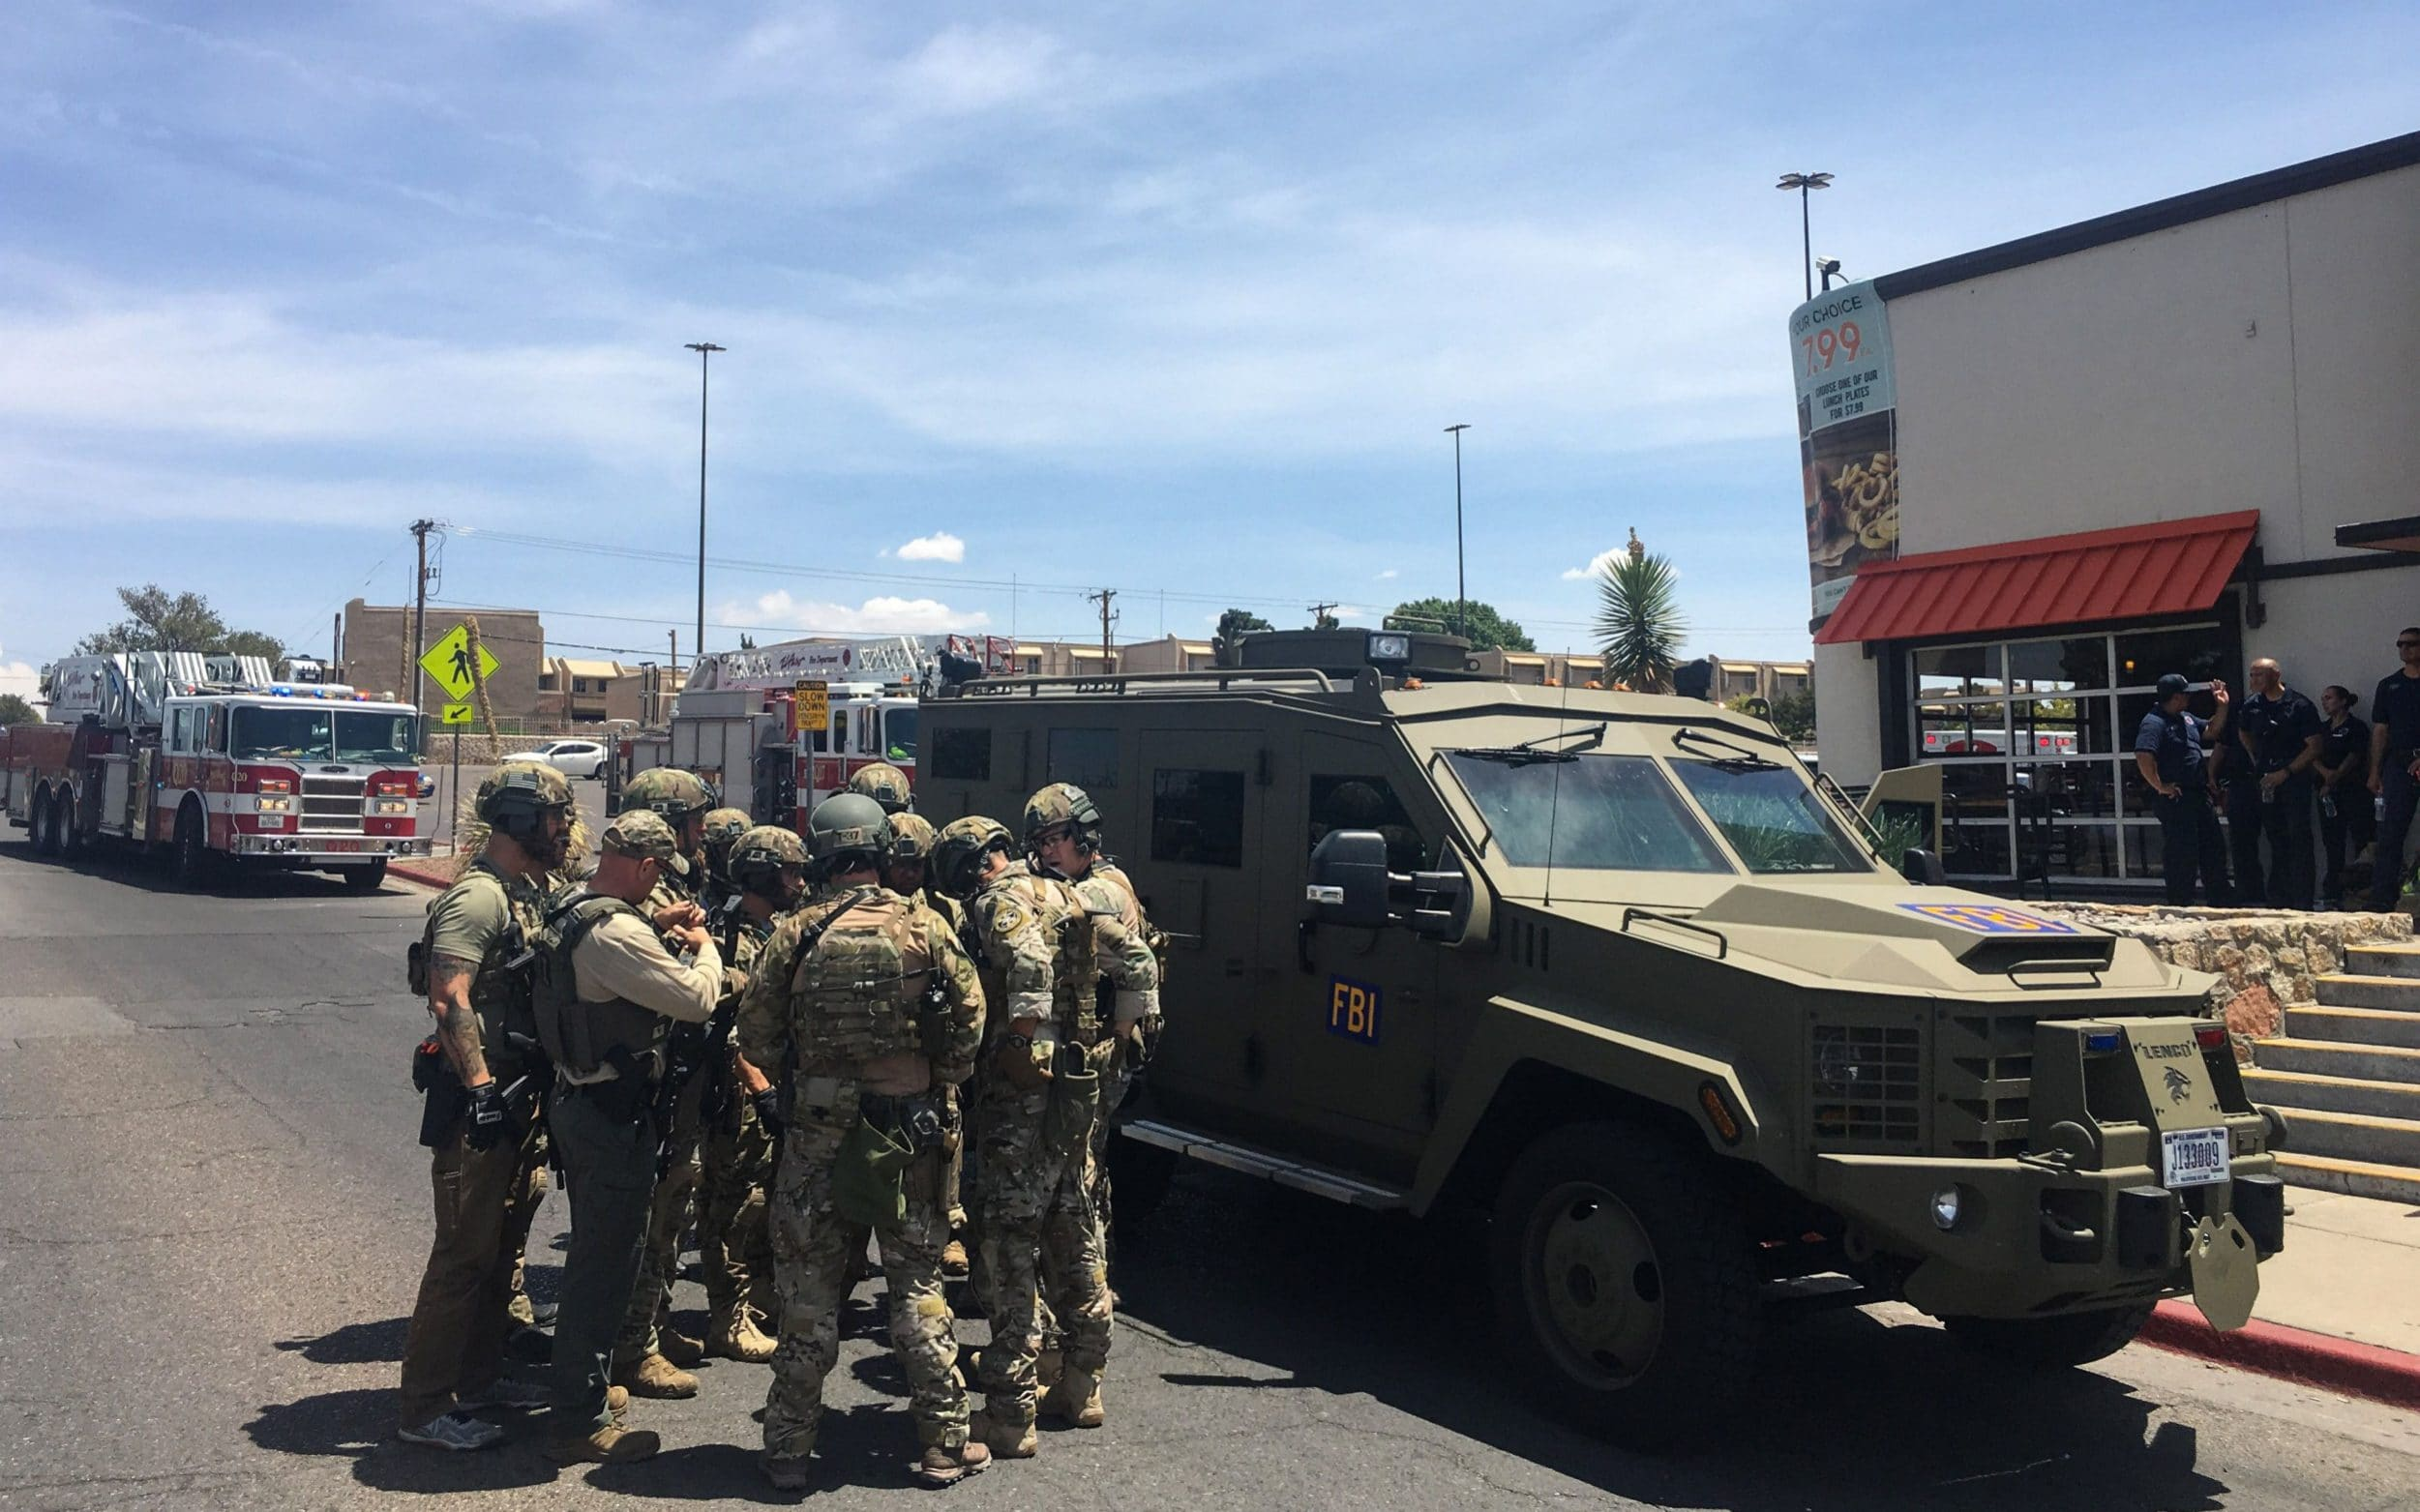 Several people dead in Texas supermarket shooting